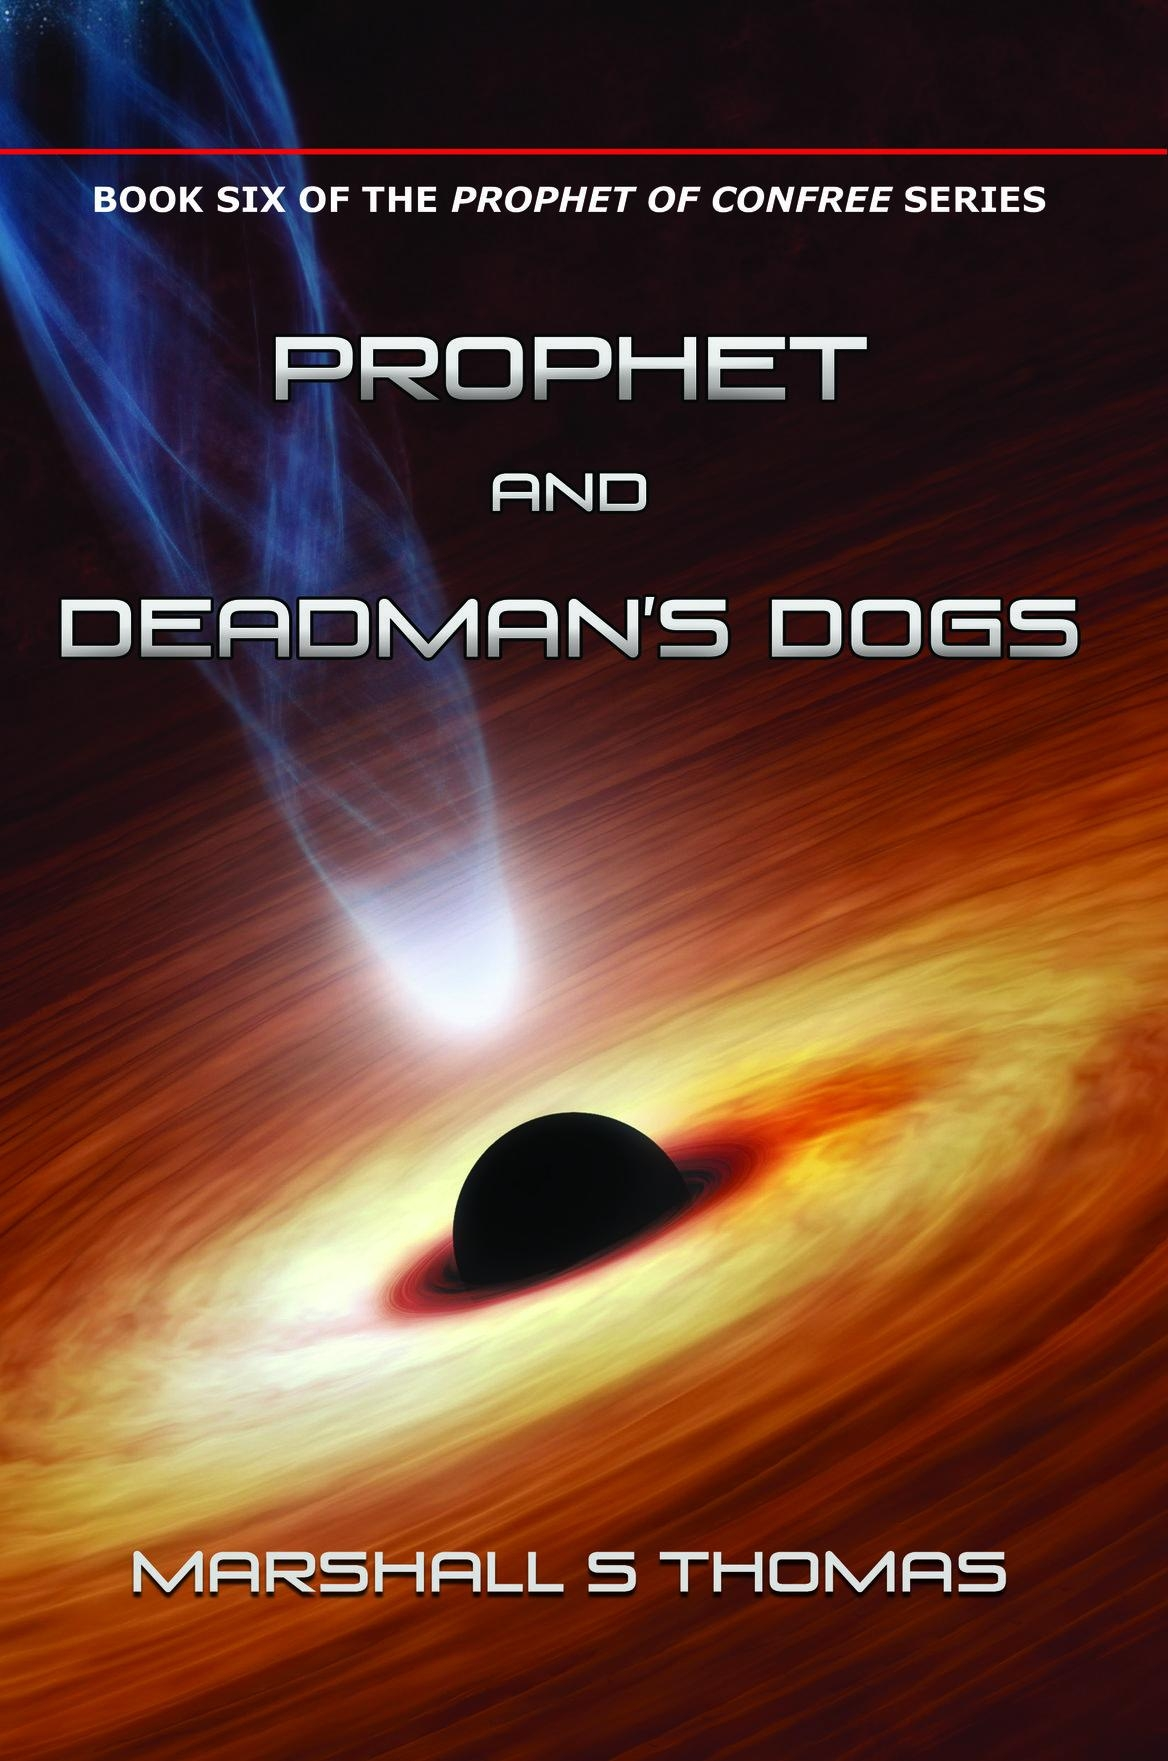 Deadmans dogs final copy.jpg